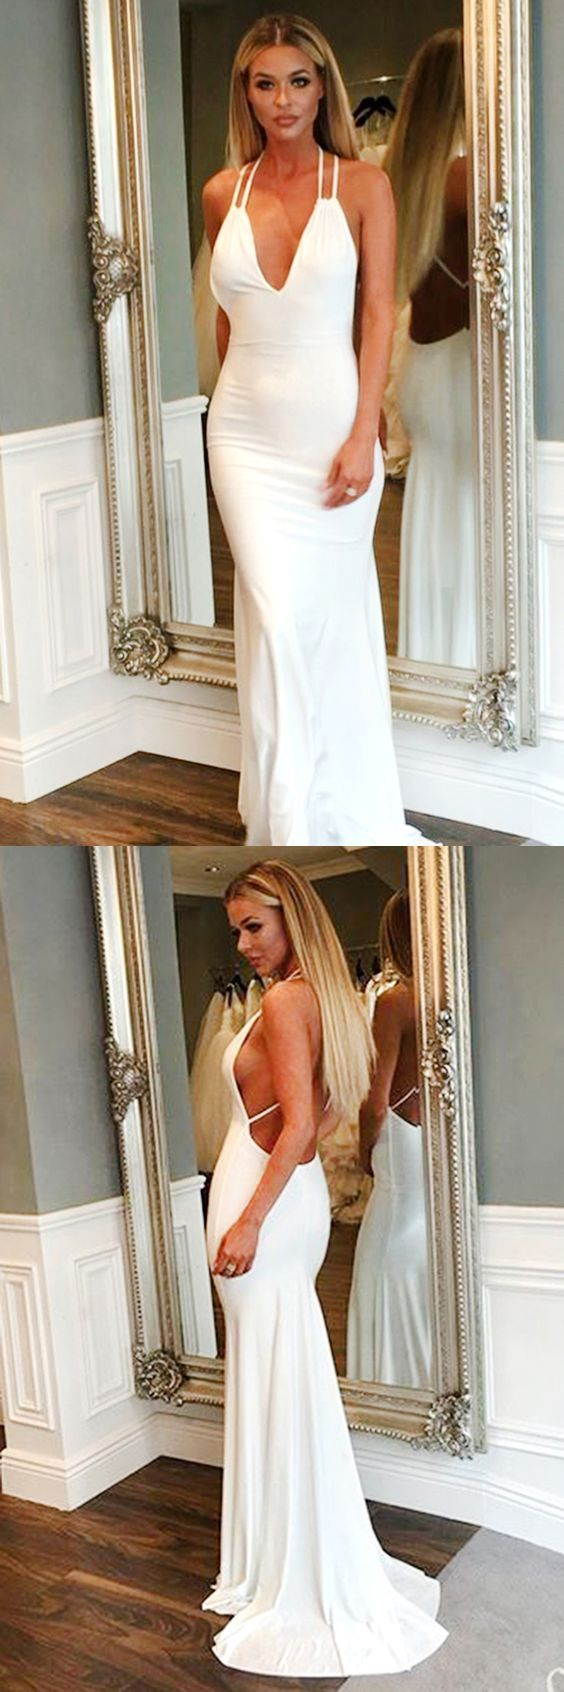 Formal Mermaid V-Neck Sleeveless White Satin Long Prom Dress, D0288